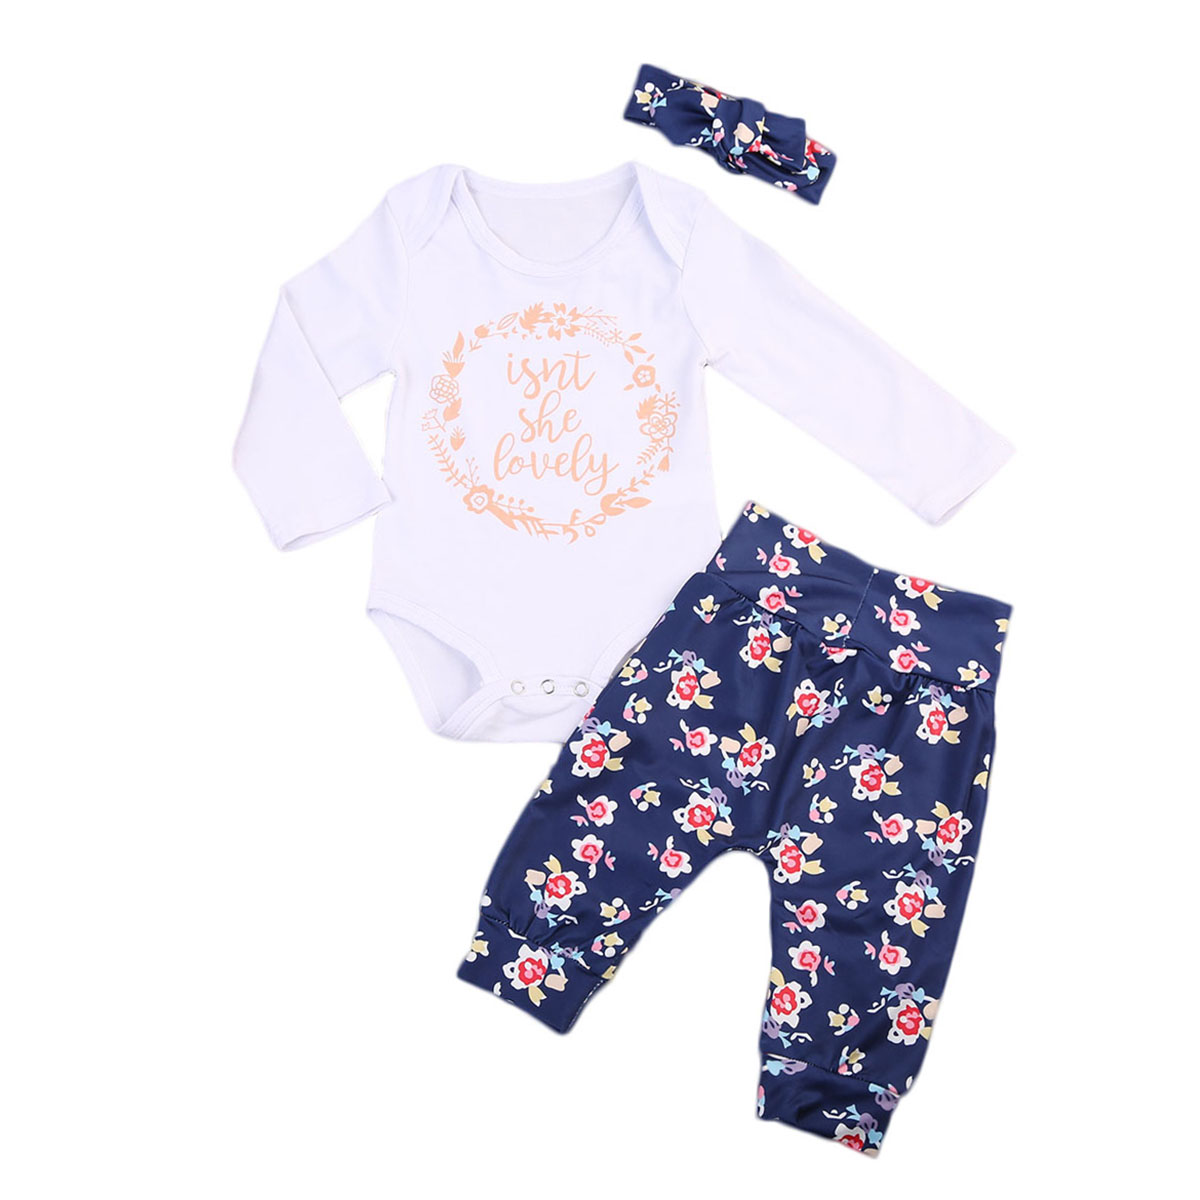 3PCS Newborn Baby Girl Clothes Set Long Sleeve Letter Print Cotton Romper Bodysuit +Floral Long Pant Headband Outfit Bebek Giyim 3pcs set newborn infant baby boy girl clothes 2017 summer short sleeve leopard floral romper bodysuit headband shoes outfits